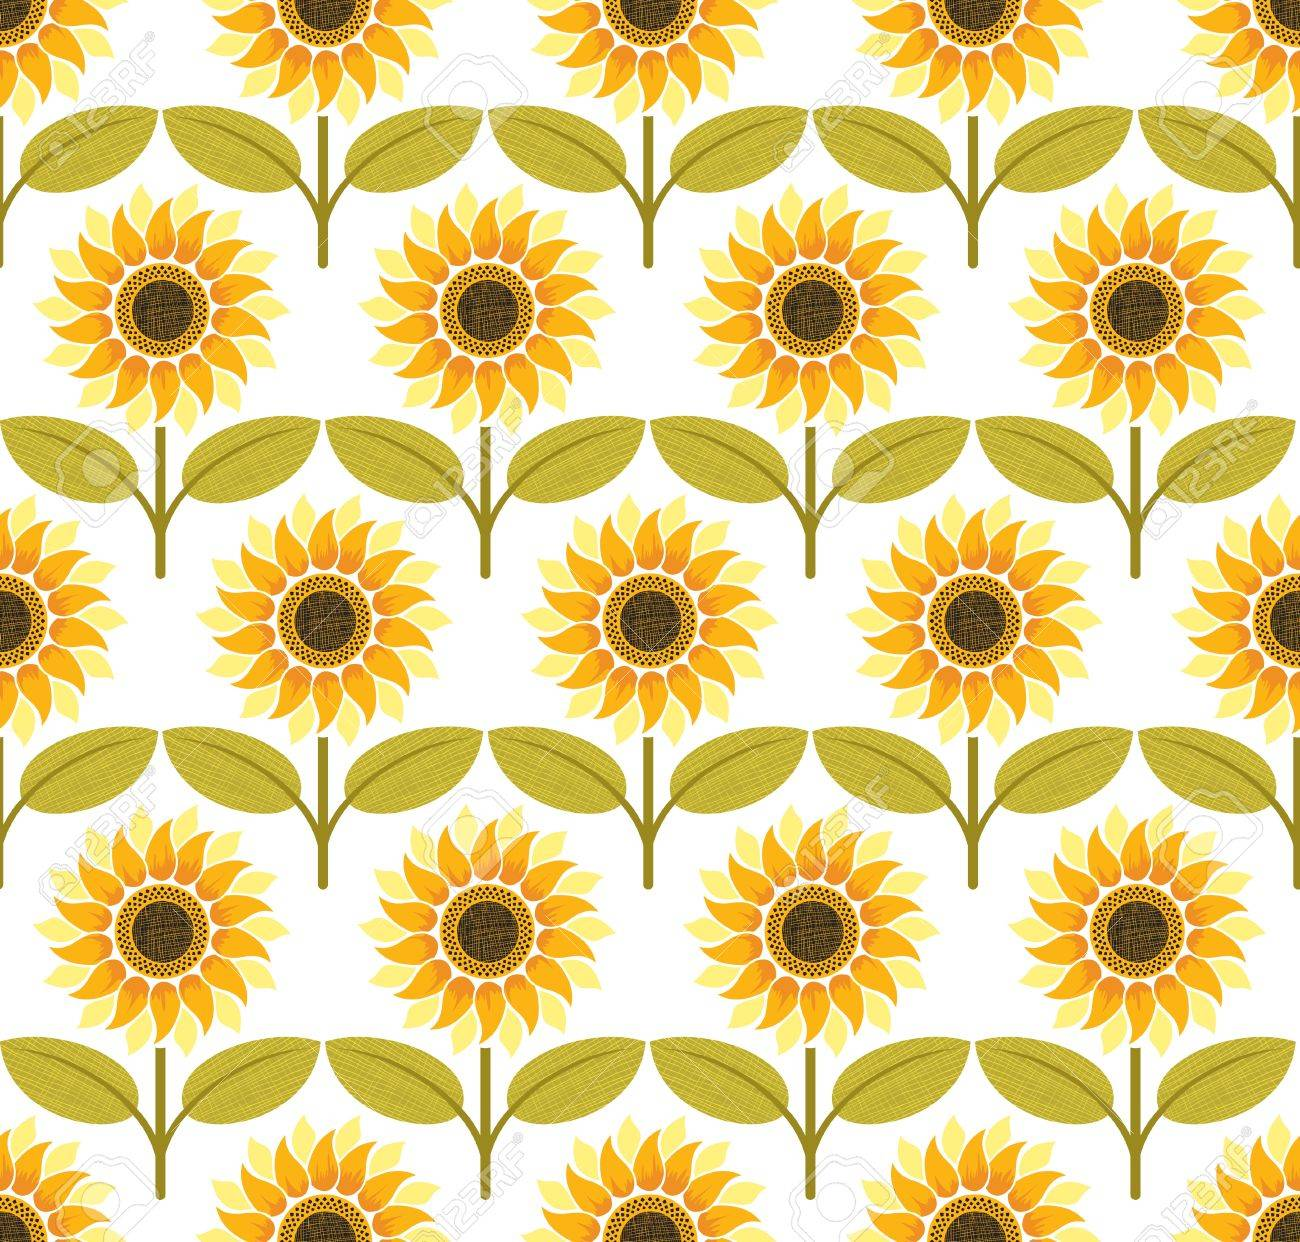 Sunflower background pattern. Colorful illustration Stock Vector - 12482720